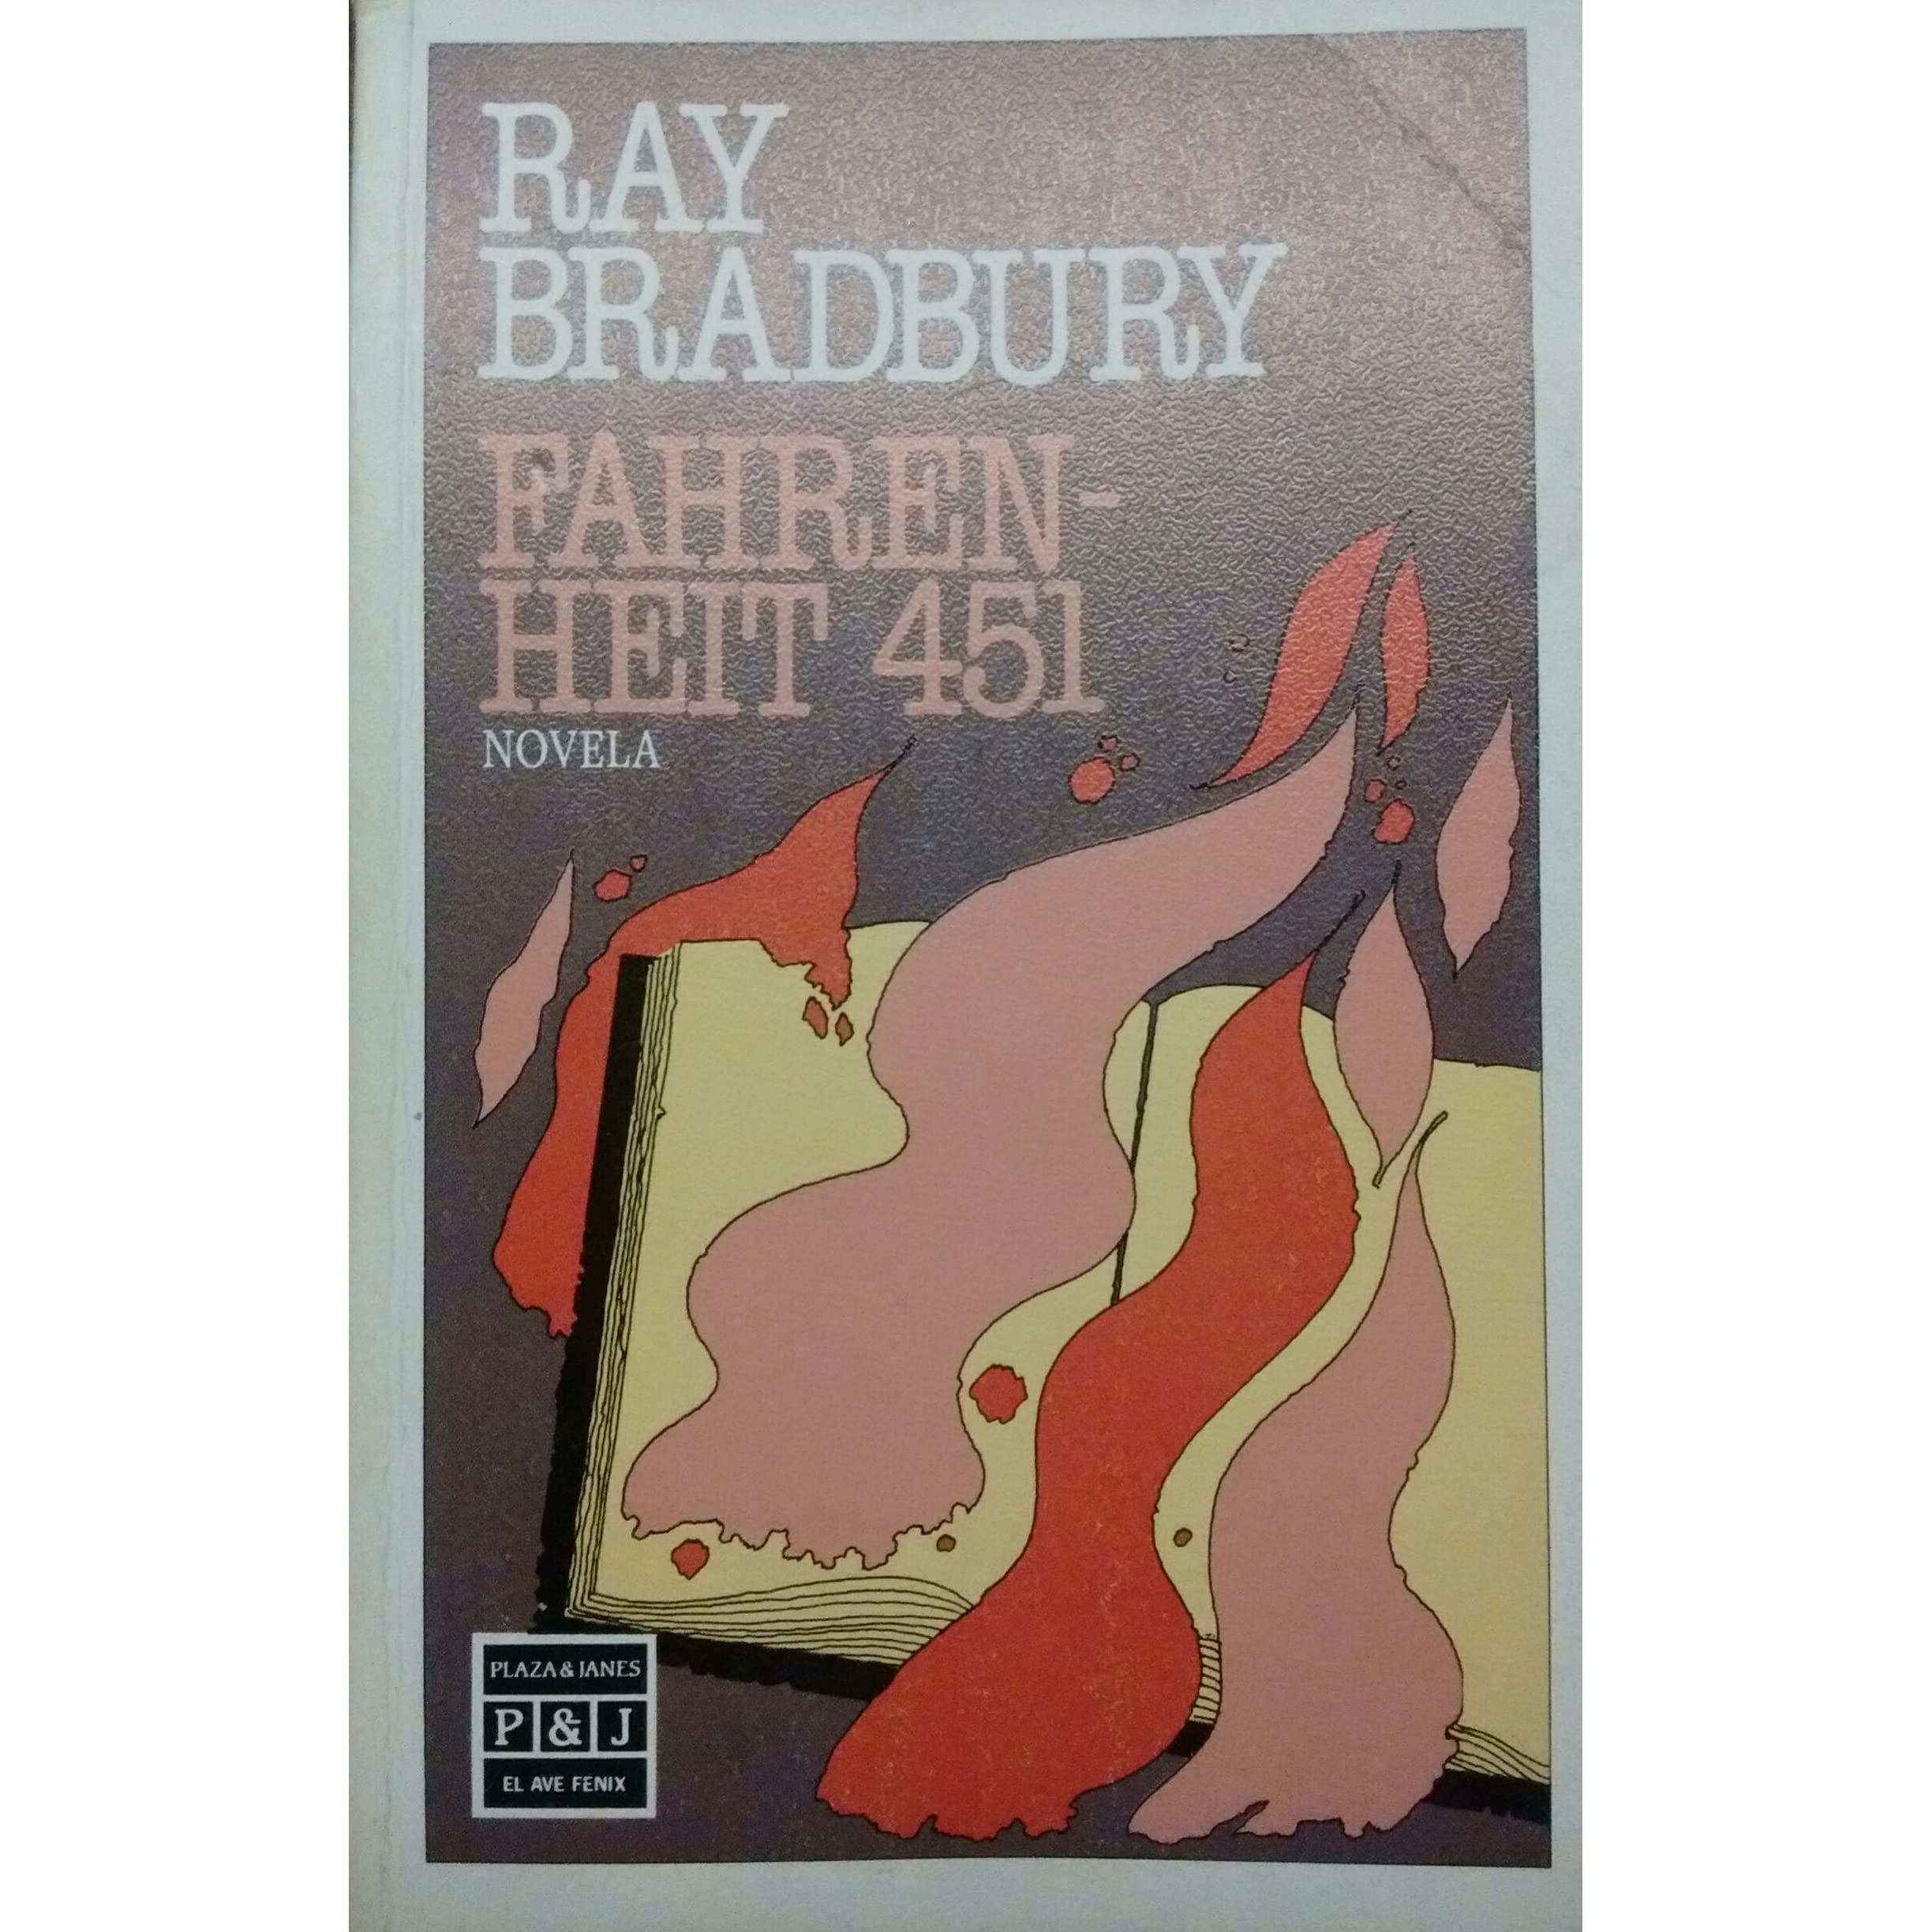 an analysis of the meetings between montag and clarisse in the novel fahrenheit 451 by ray bradbury Fahrenheit 451: the meetings between montag and clarisse the novel fahrenheit 451 by ray bradbury is about a futuristic society that has banned books.